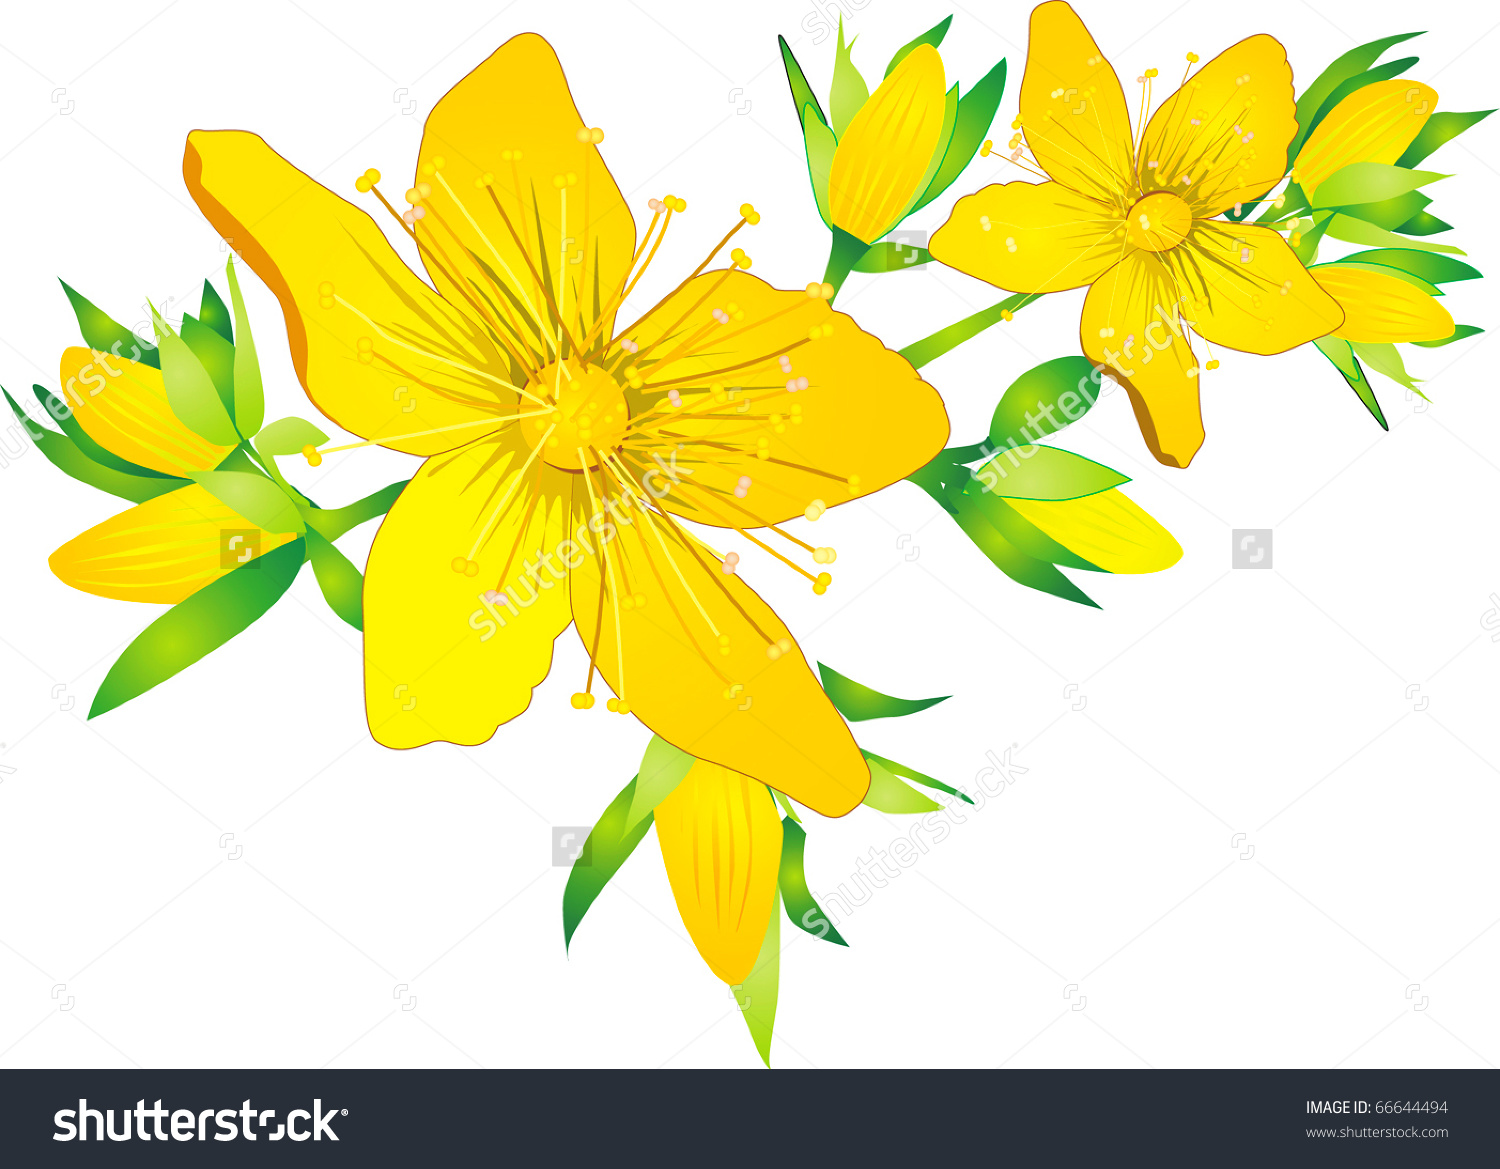 Hypericum, Hidcote, Flowers And Buds Isolated On White Stock.